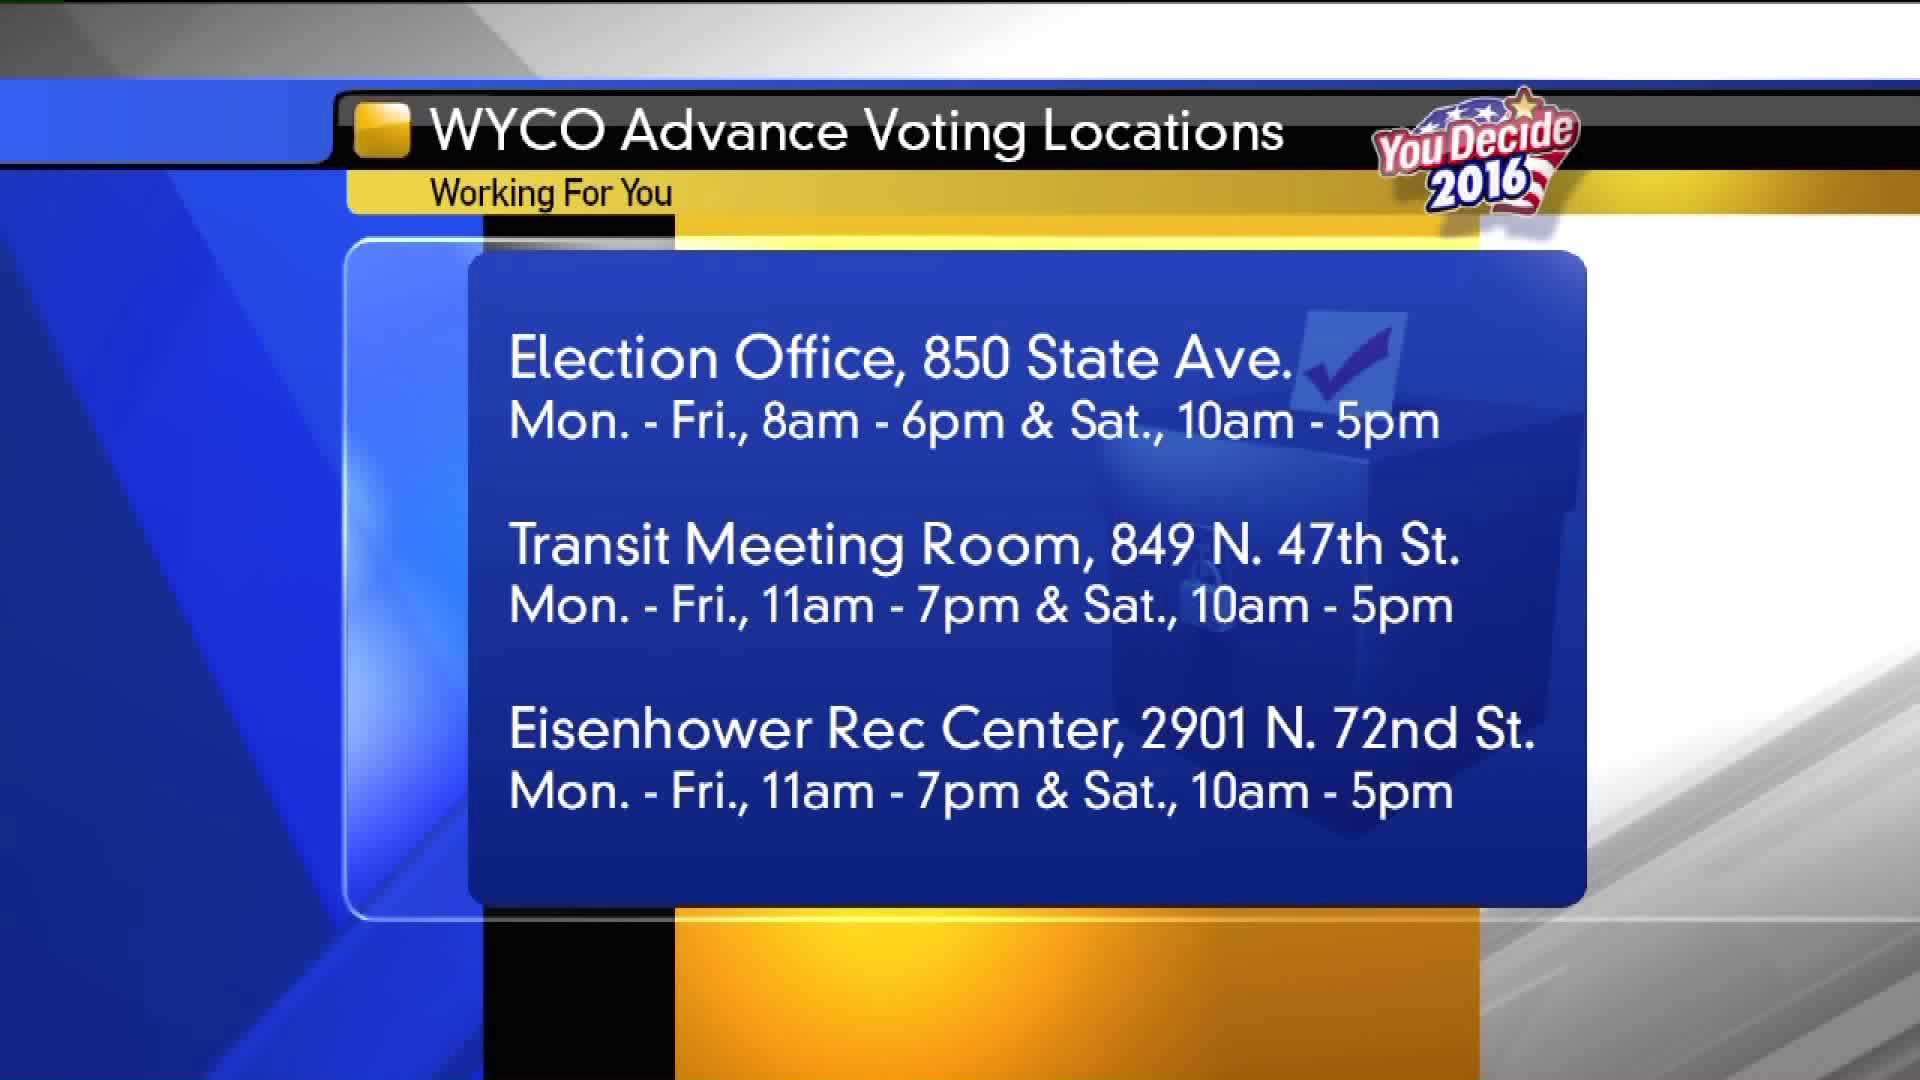 Here are the three advance voting locations in Wyandotte County and when they are open.